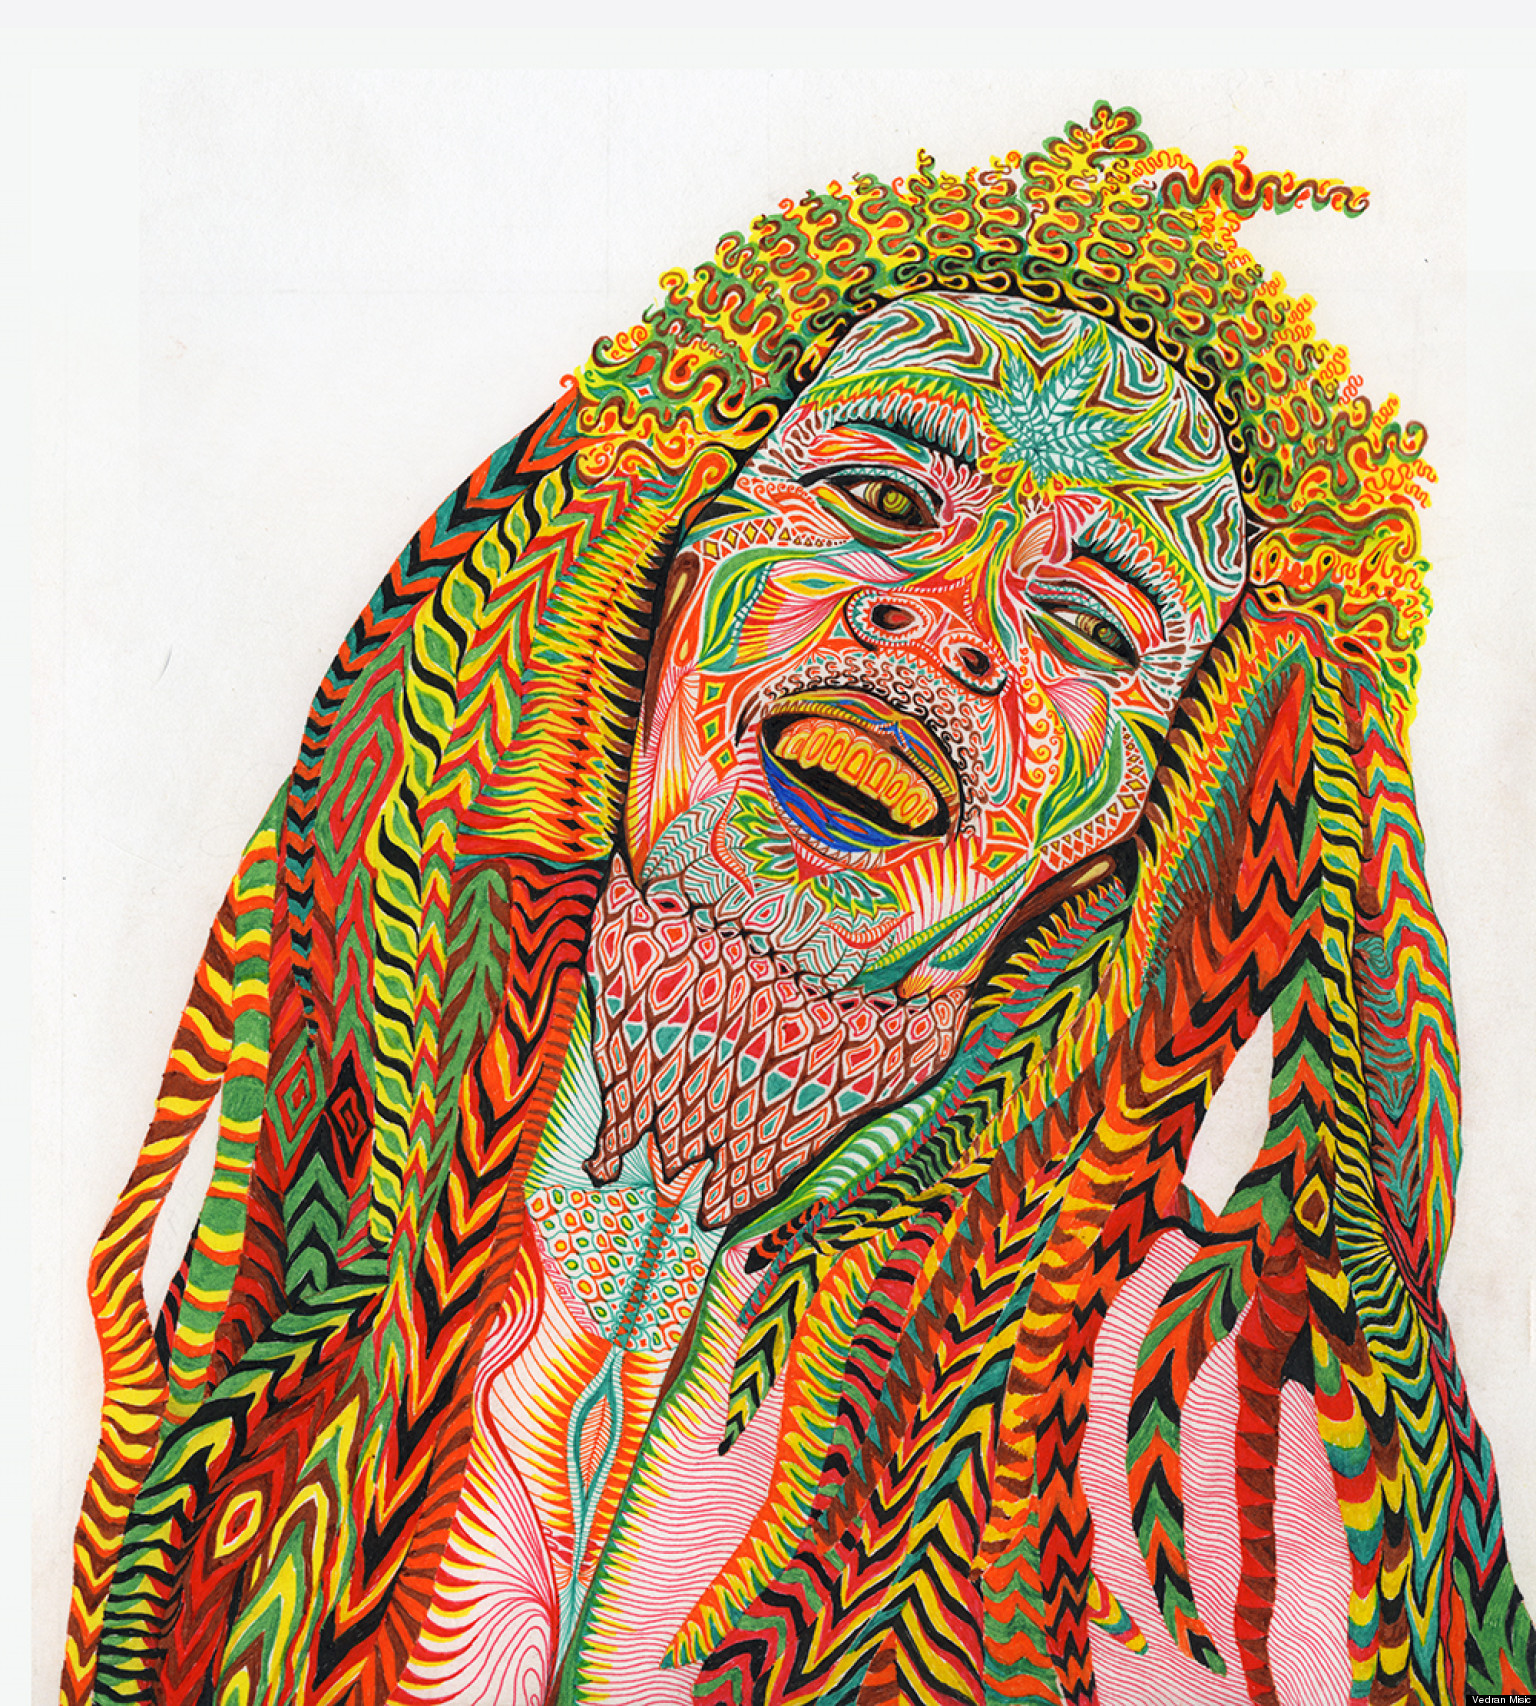 Psychedelic Art: Vedran Misic Creates Colorful Depictions